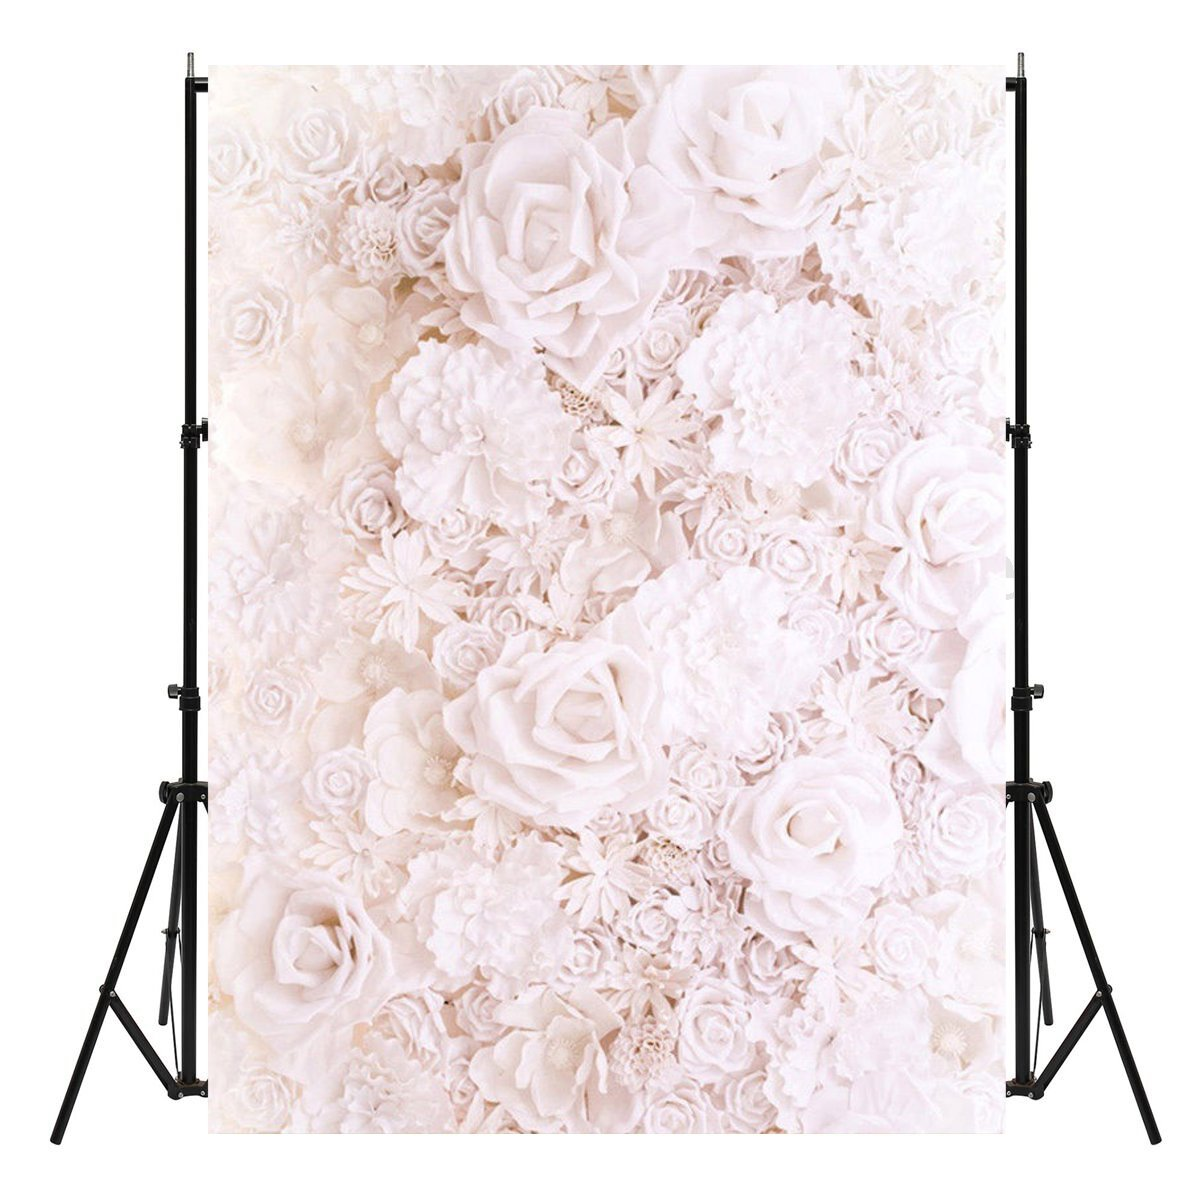 NEW Flowers Baby Photography Backgrounds 3x5ft Vinyl Studio Photo Backdrops Bright  Color Rich Patterns